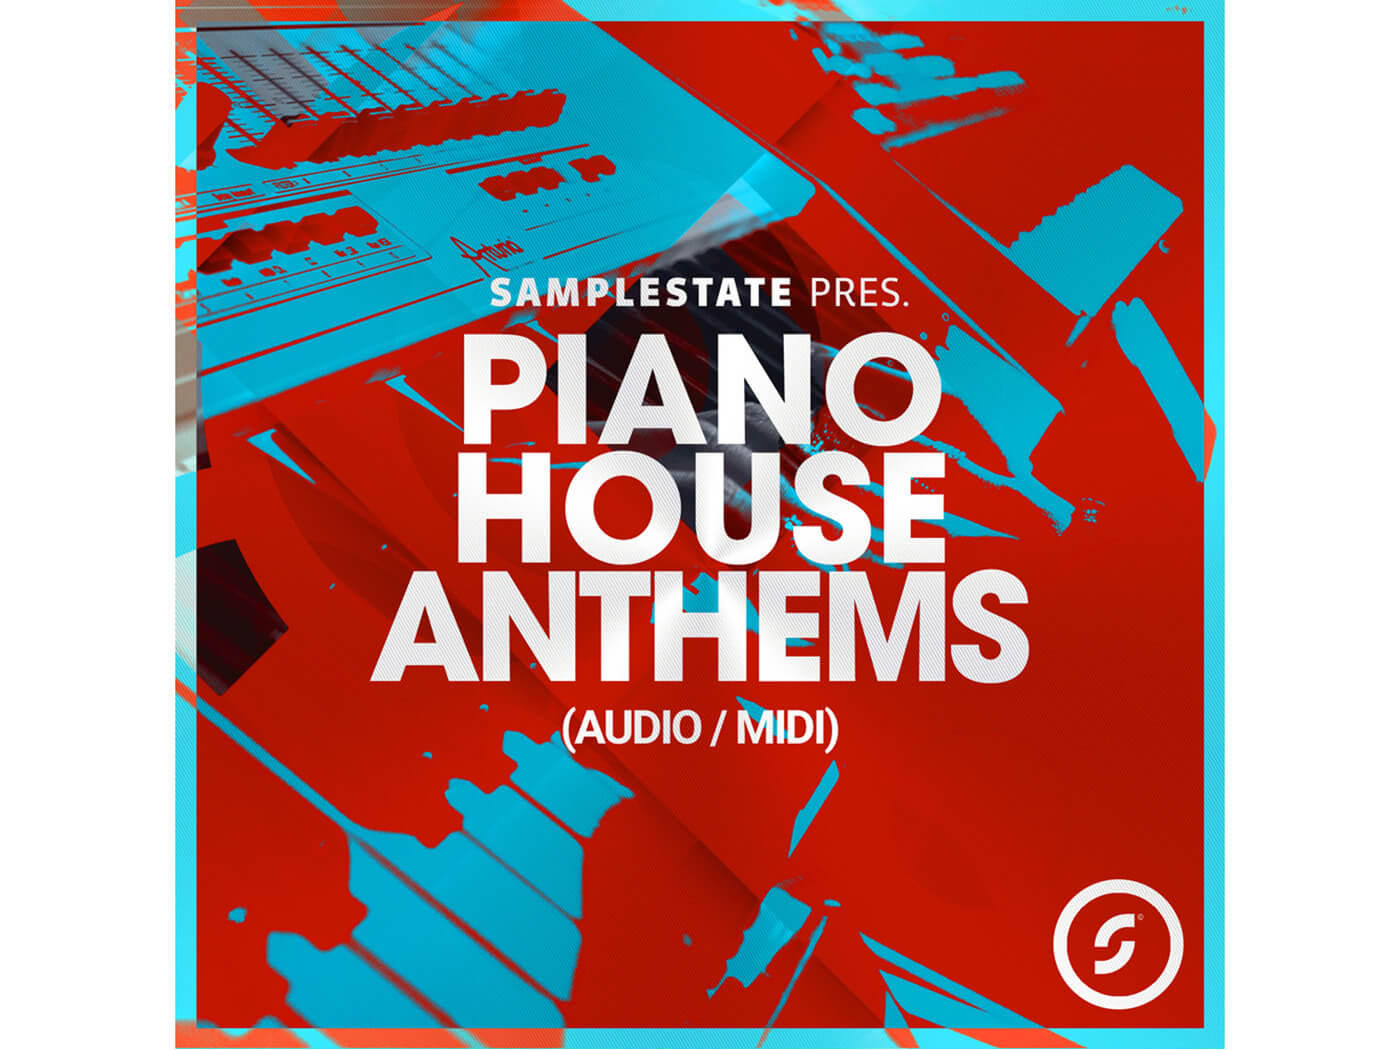 Samplestate - Piano House Anthems